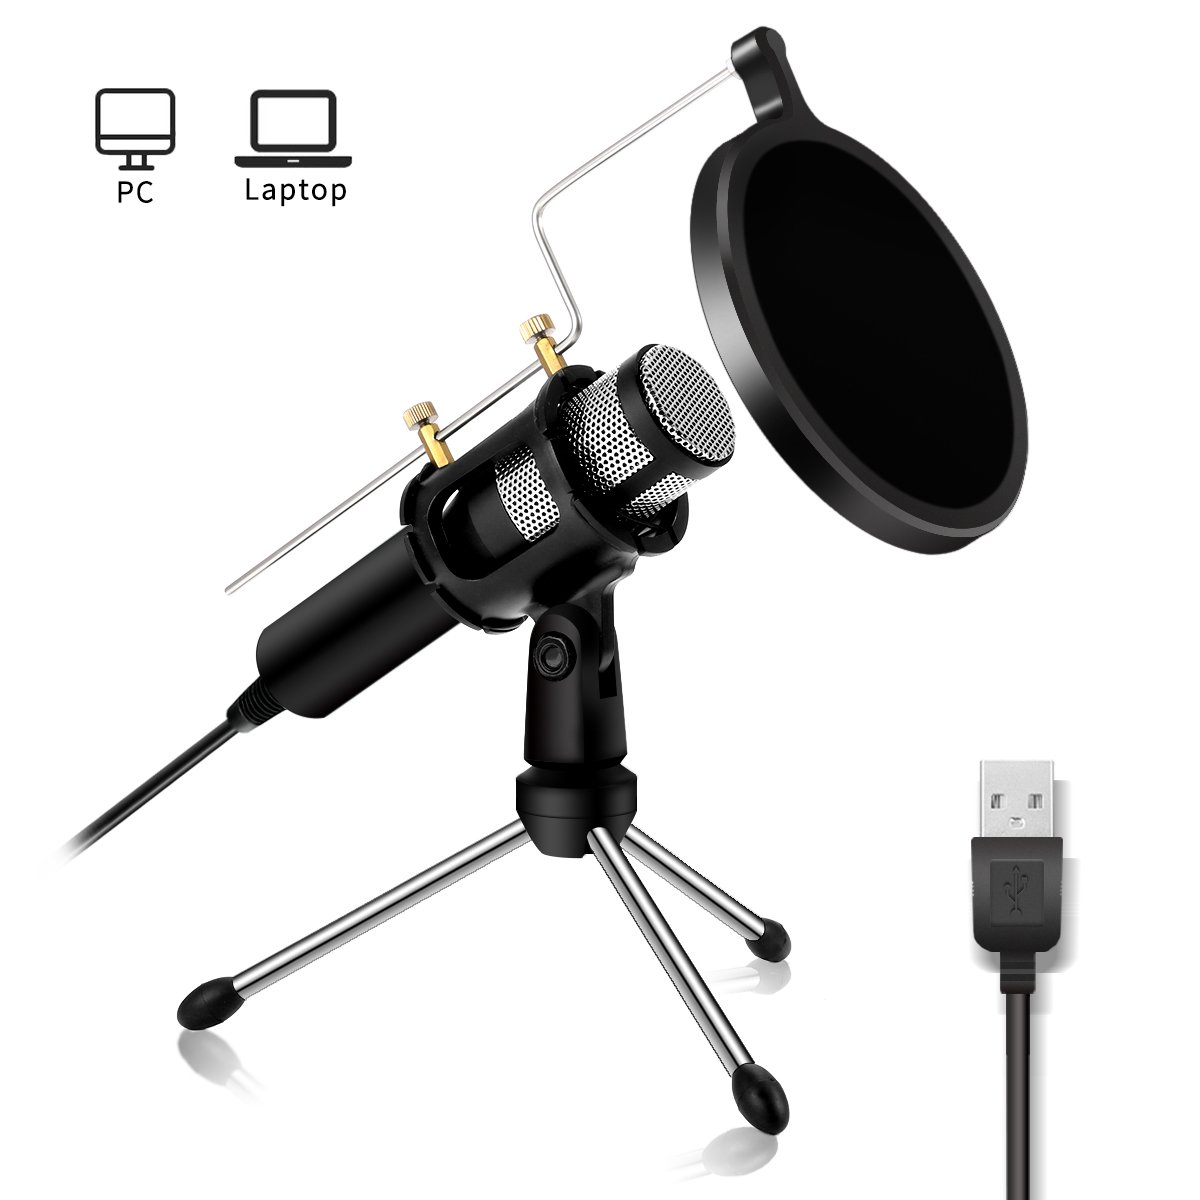 Cheap 4p Microphone Plug, find 4p Microphone Plug deals on line at